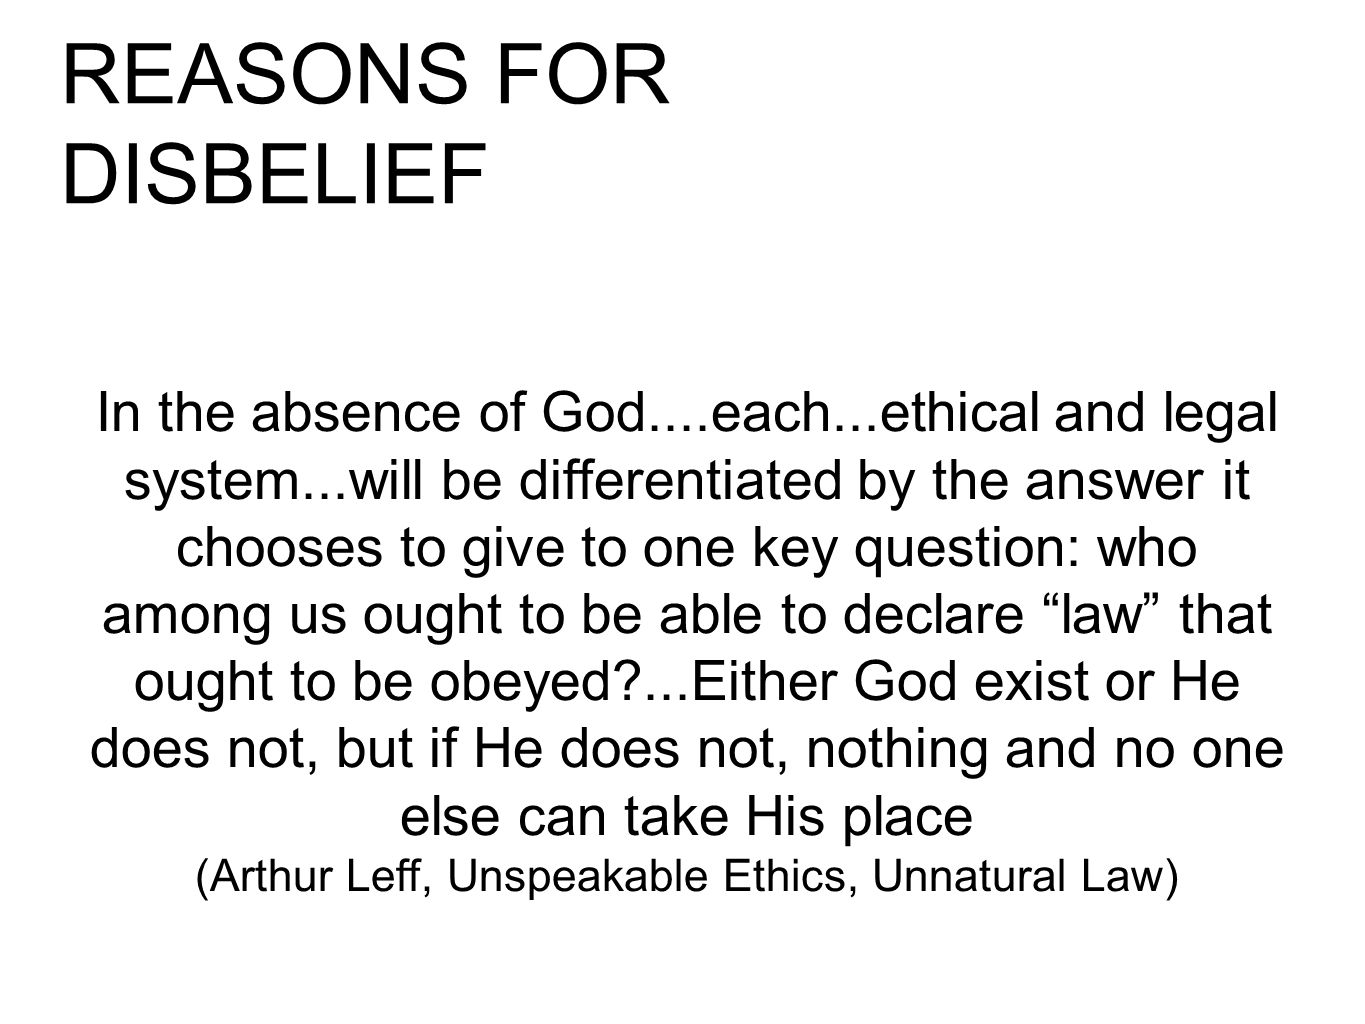 REASONS FOR DISBELIEF In the absence of God....each...ethical and legal system...will be differentiated by the answer it chooses to give to one key question: who among us ought to be able to declare law that ought to be obeyed ...Either God exist or He does not, but if He does not, nothing and no one else can take His place (Arthur Leff, Unspeakable Ethics, Unnatural Law)